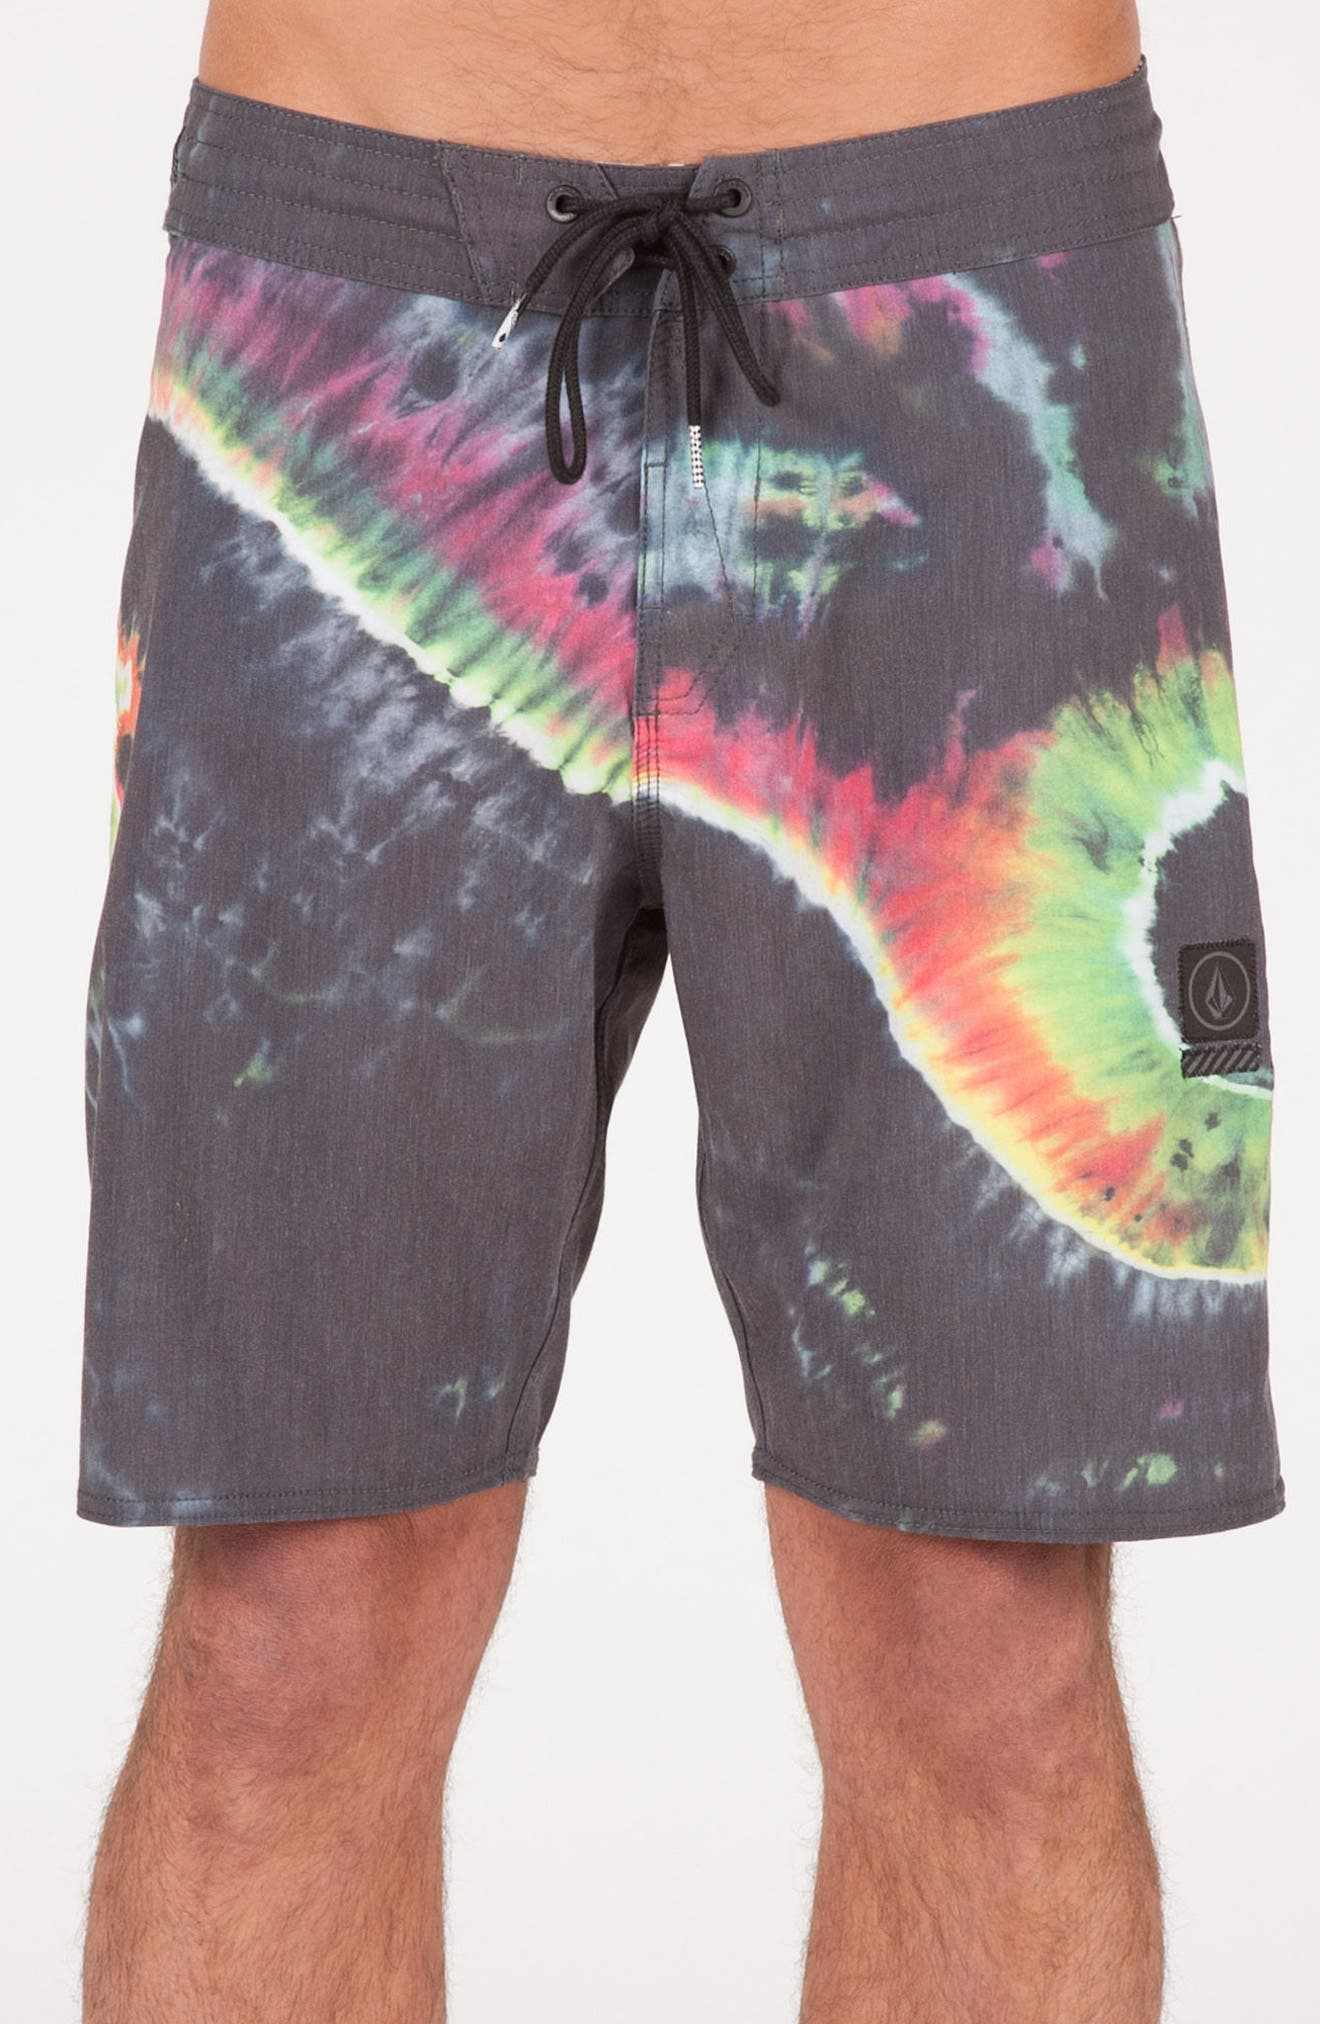 Yin Yang Slinger Board Shorts,                             Main thumbnail 1, color,                             002